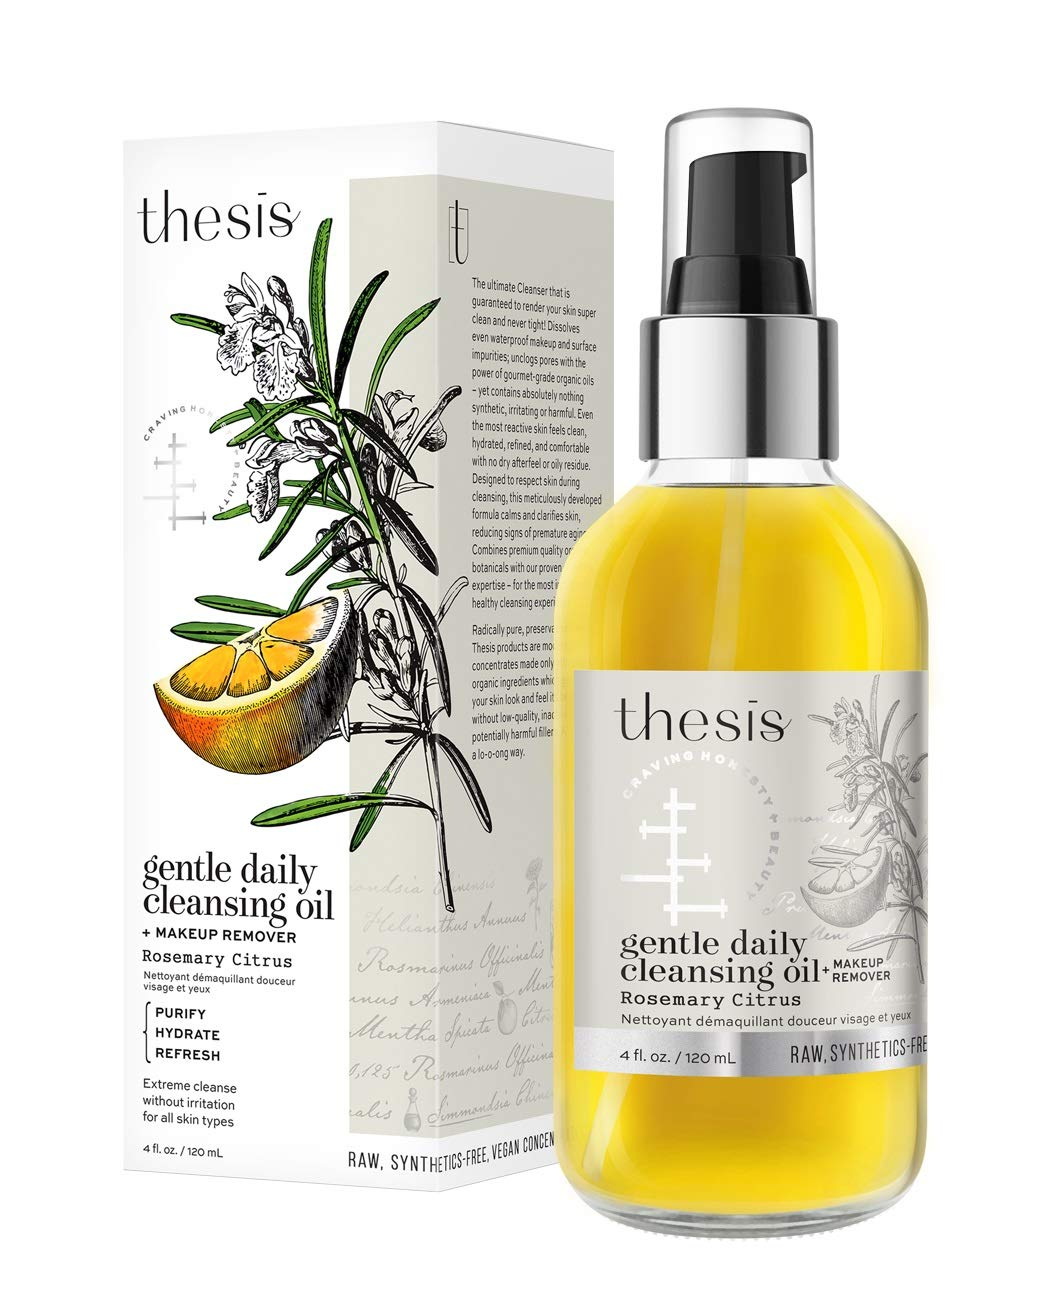 Thesis Organic Natural Facial Cleansing Oil & Makeup Remover - Rosemary Citrus - for Face, Eyes, Lips - Gentle Moisturizing Non-Irritating Daily Face Cleanser by Thesis